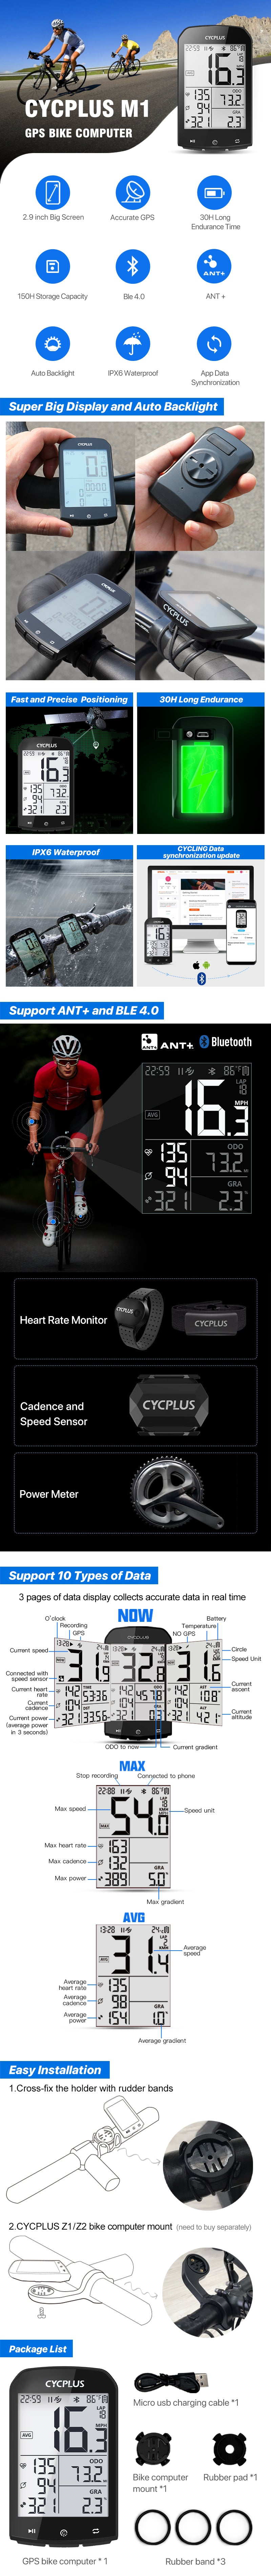 CYCPLUS M1 FEATURES BIKE COMPUTER